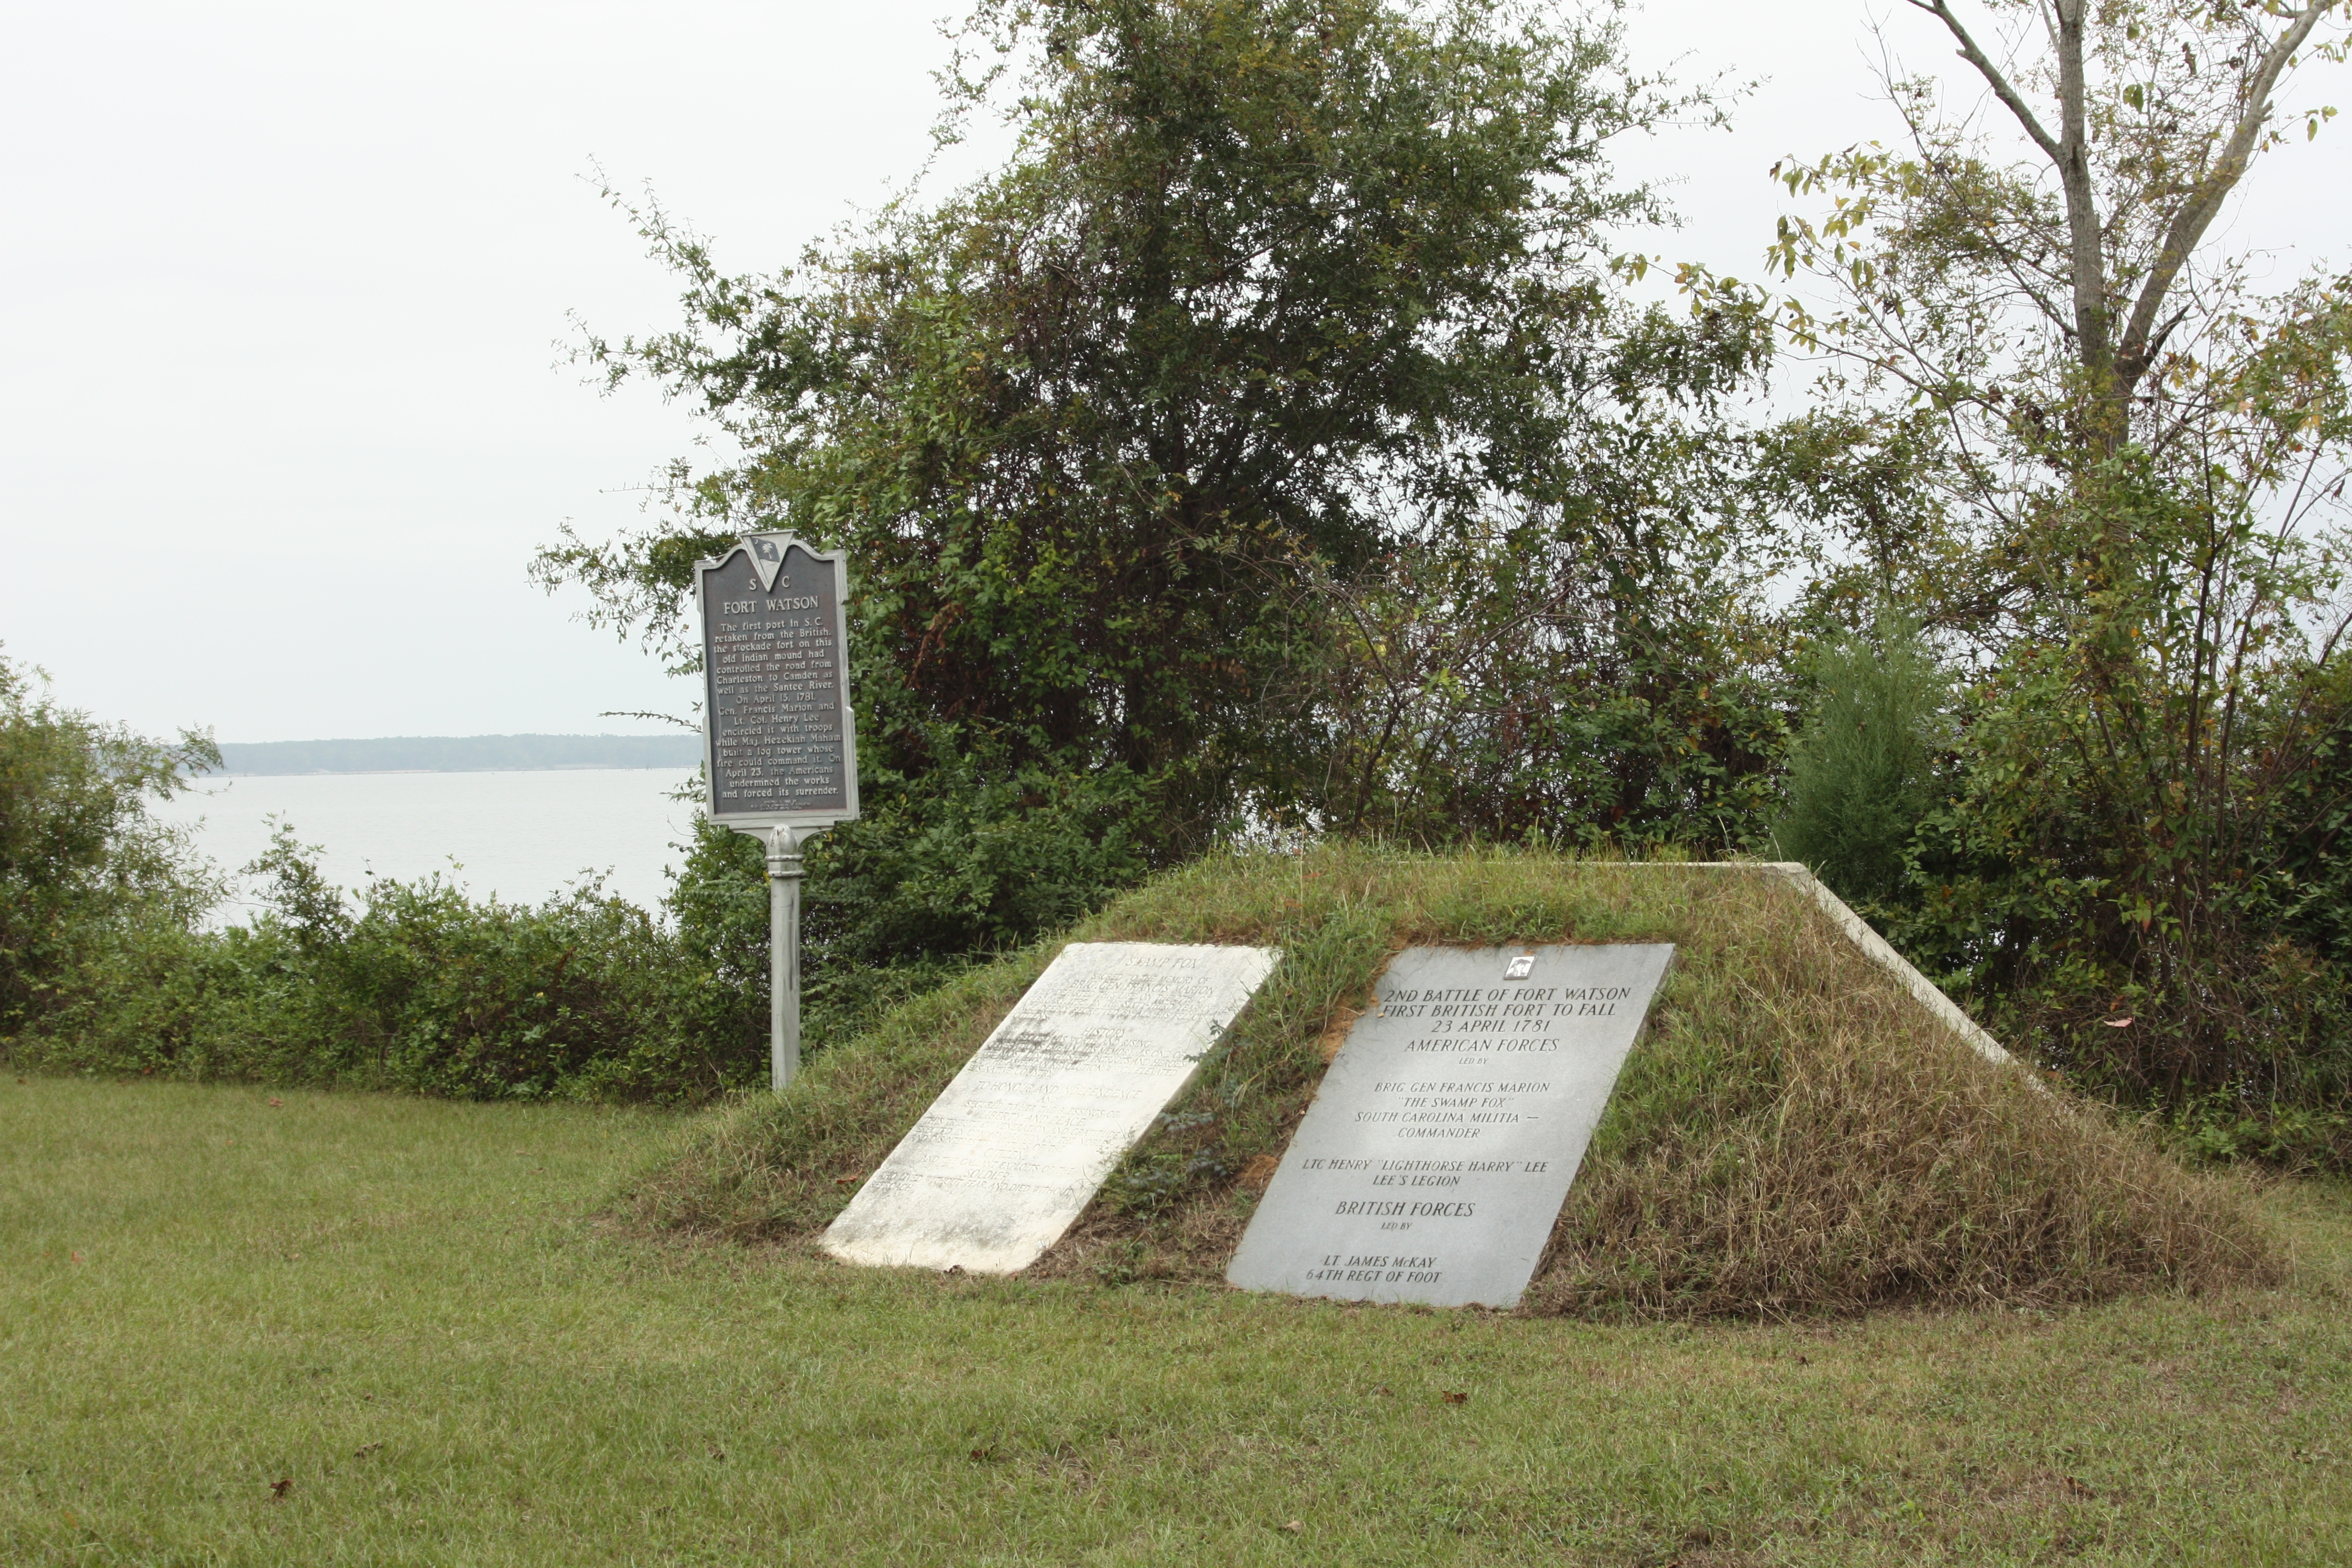 Swamp Fox Marker (center) along with Fort Watson markers